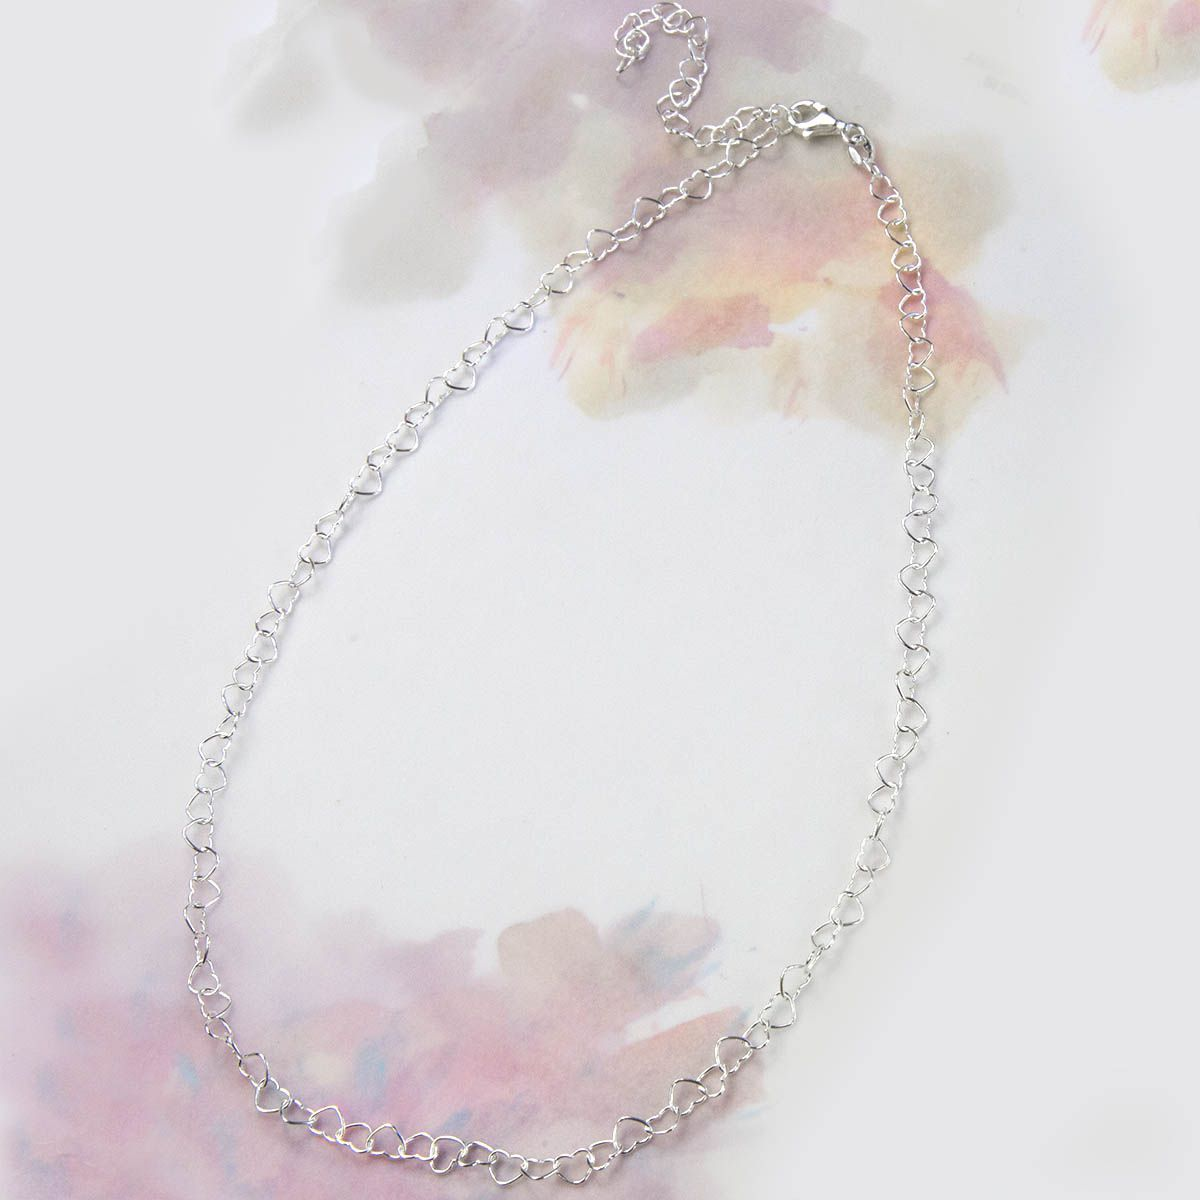 heart shaped wire necklace draped over pink water colour background